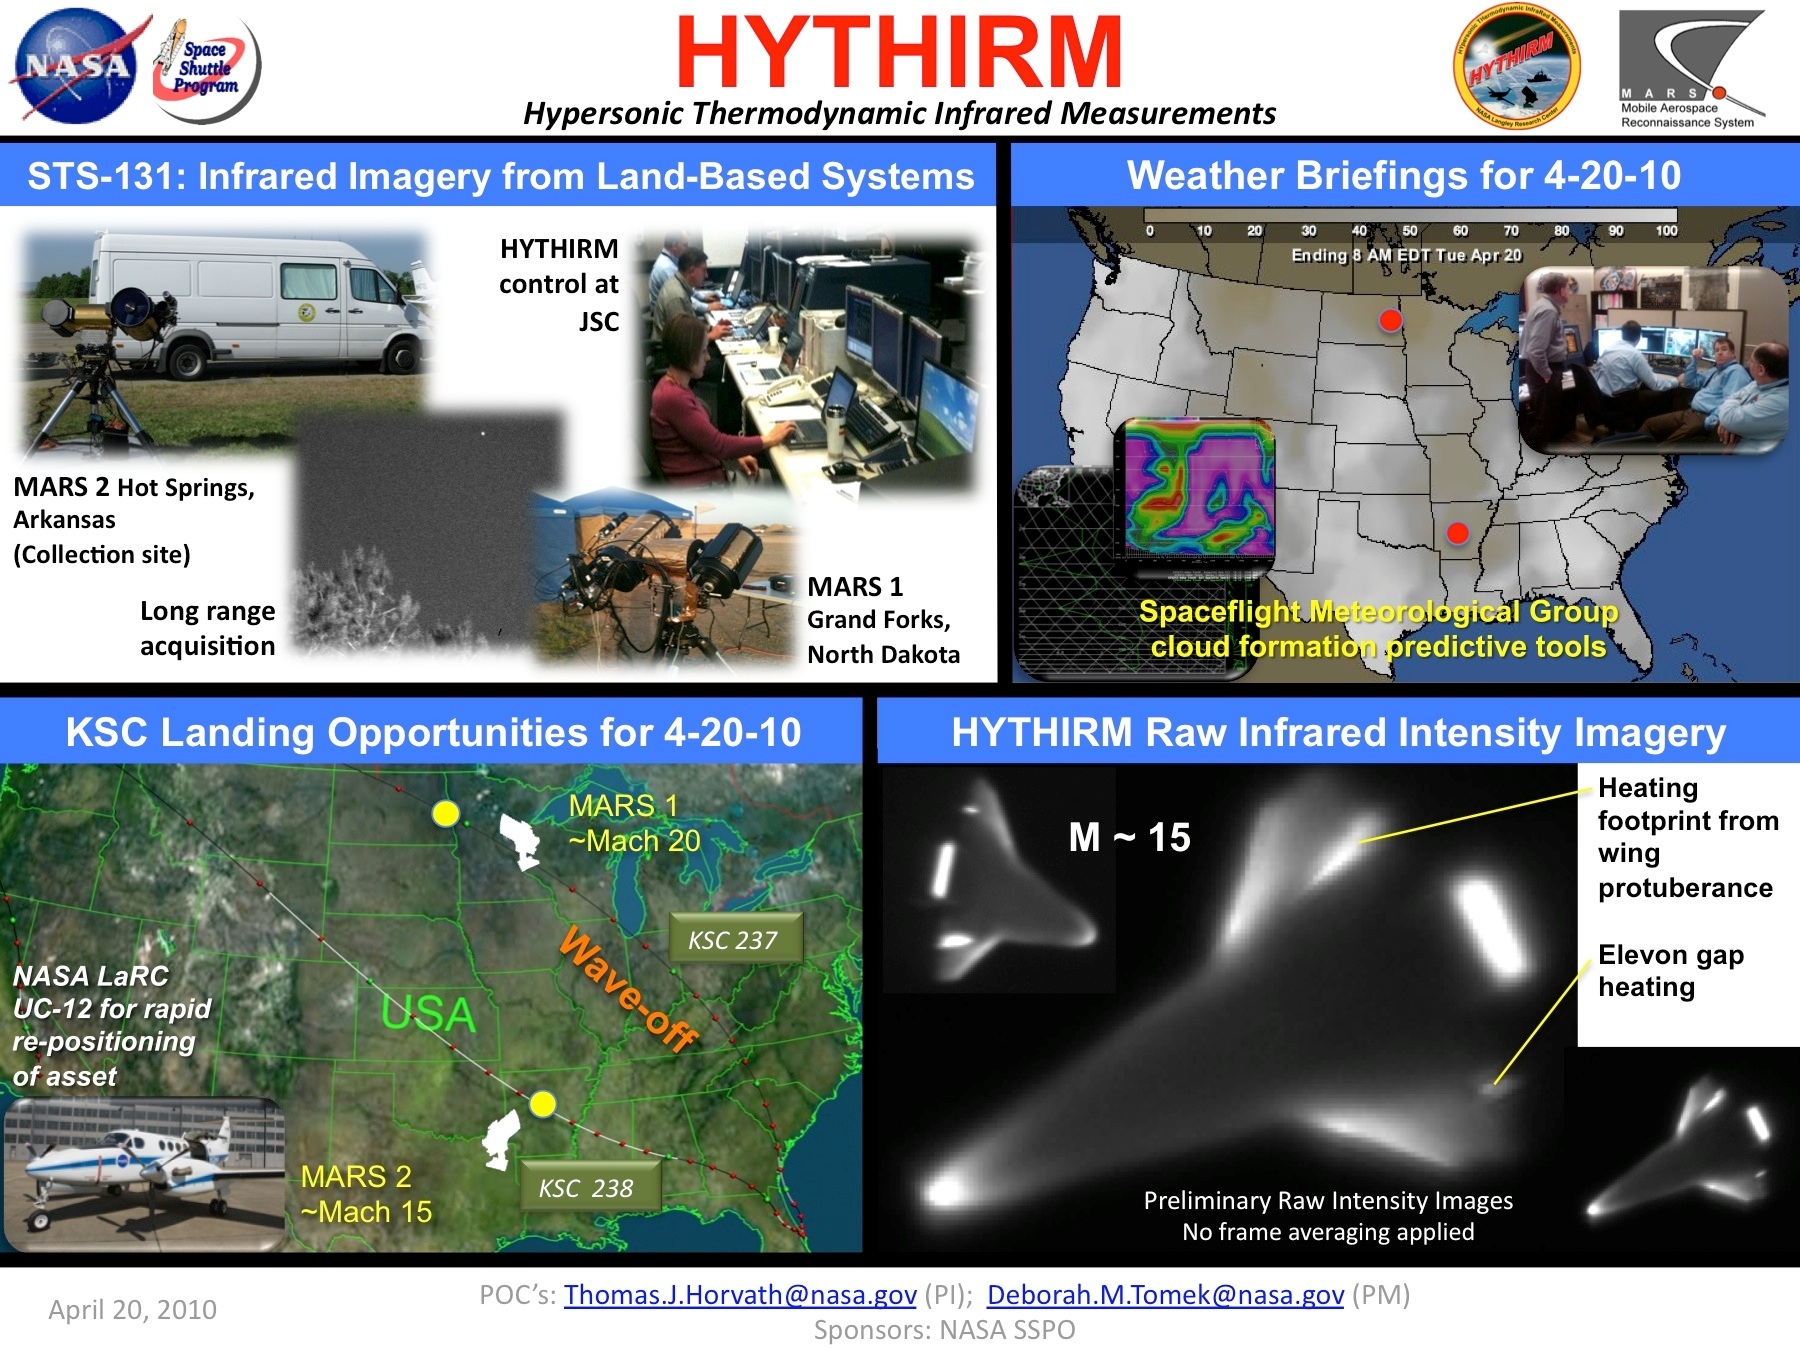 Graphic with example of thermal imagery and with examples of HYTHIRM's assets